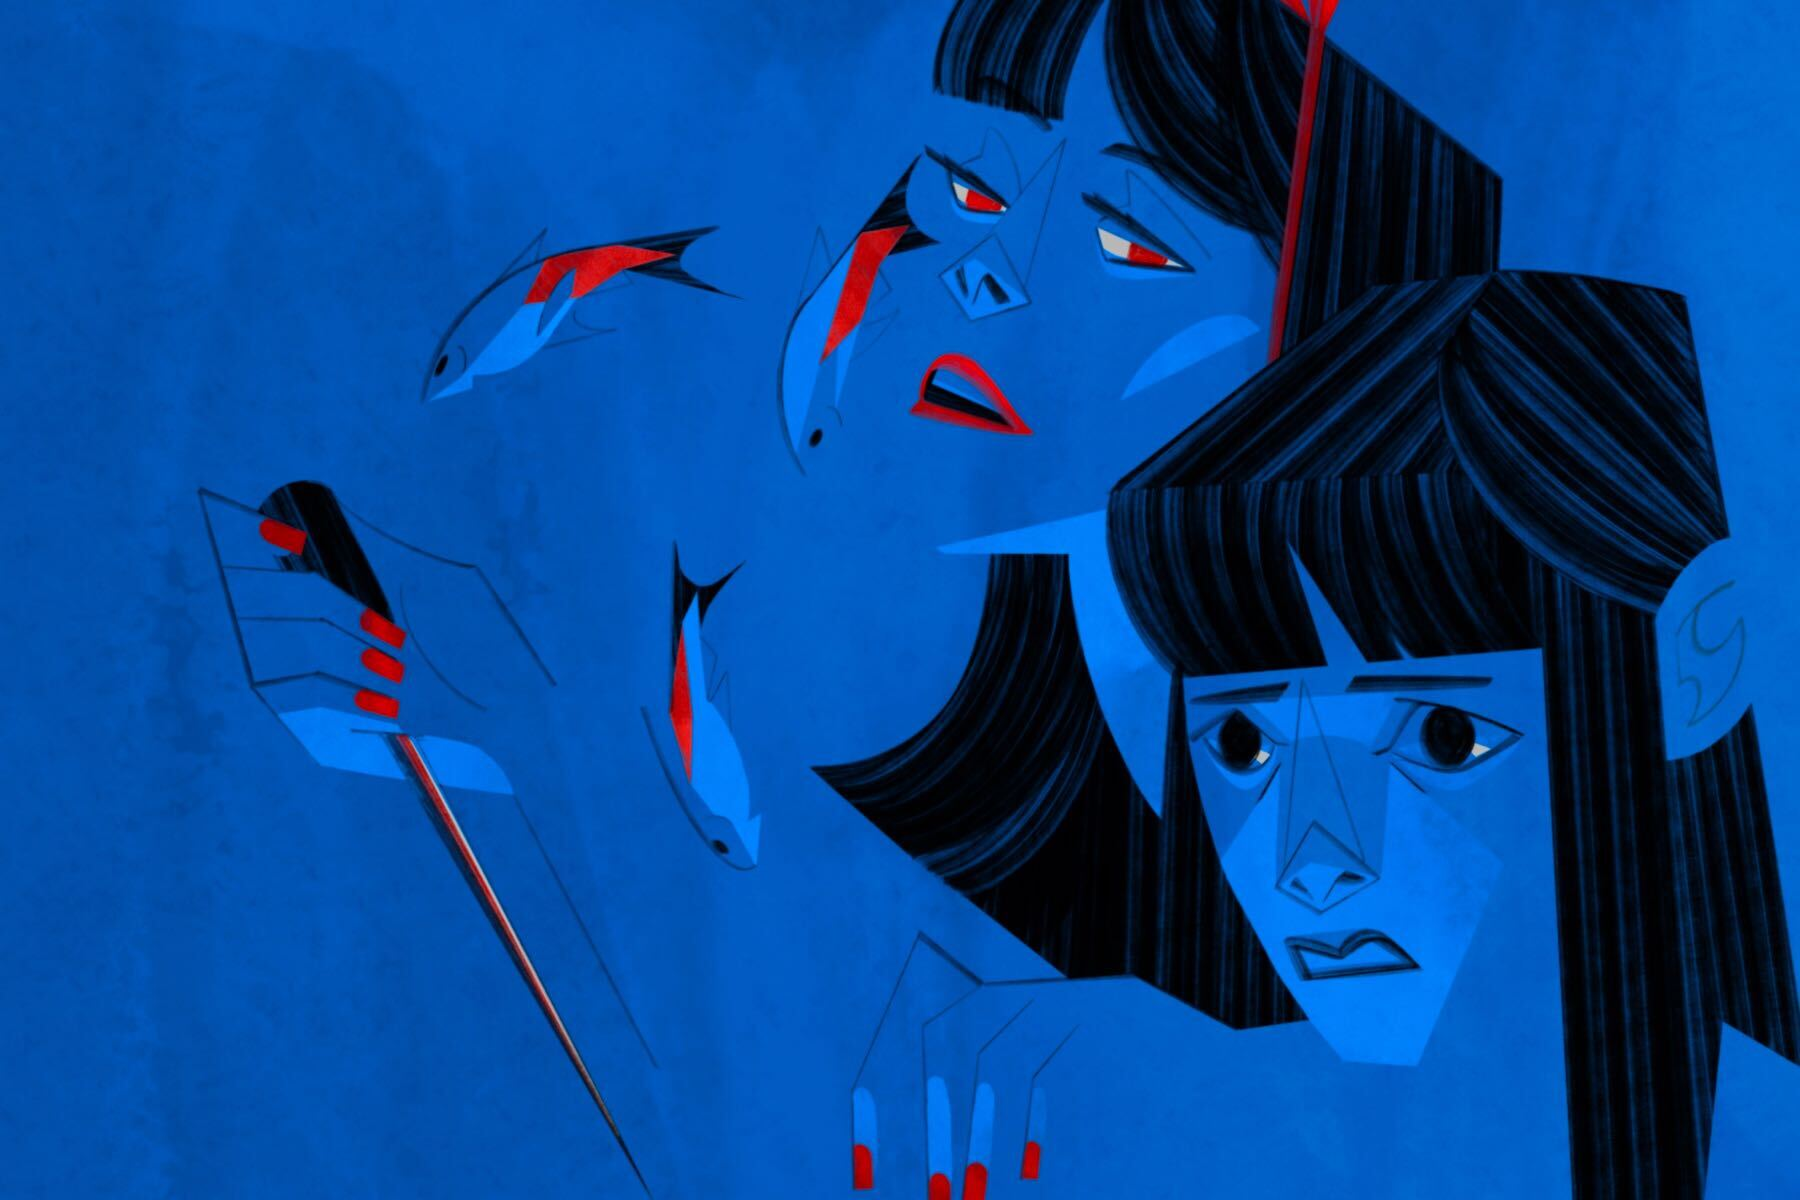 Perfect Blue Perfectly Captures The Loss Of Identity In The Internet Age